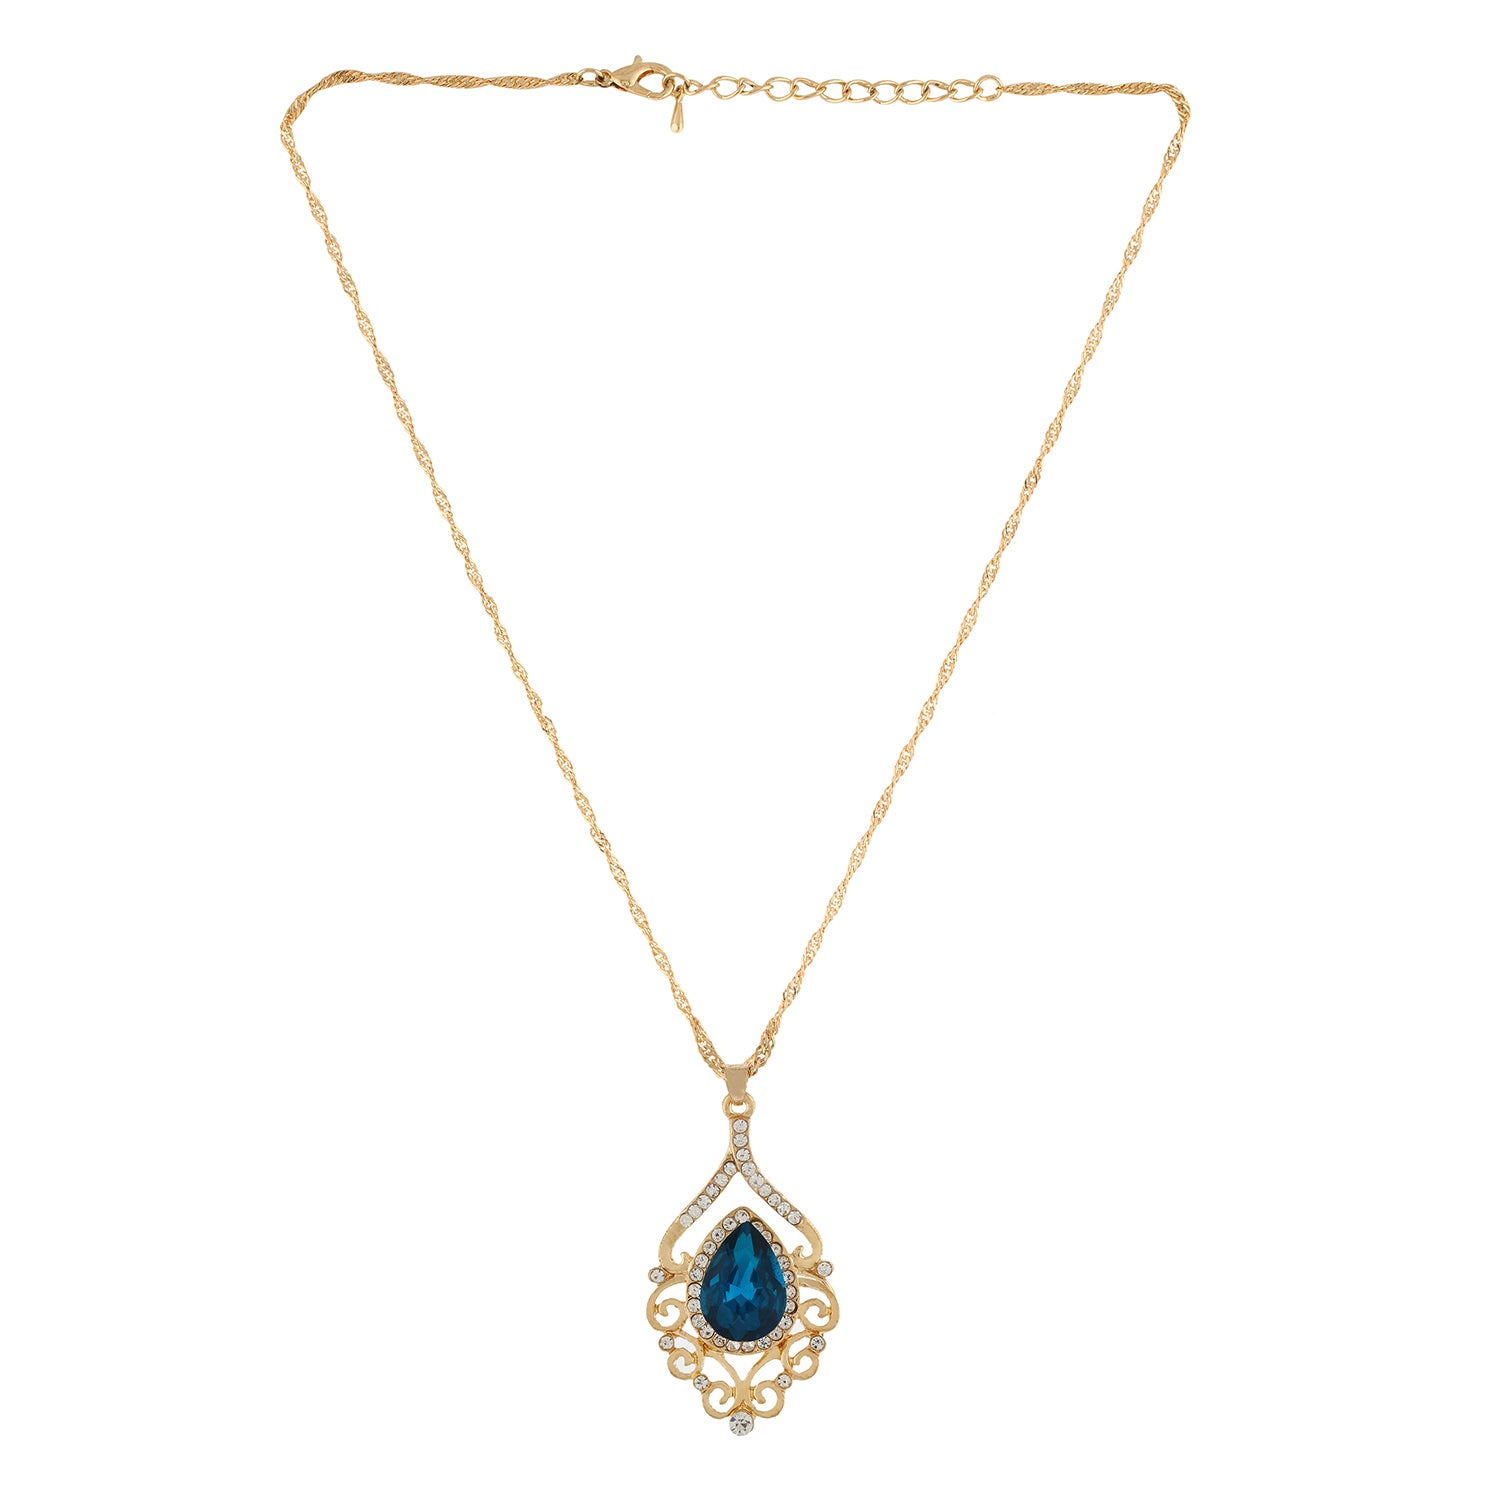 Blue Colour Drop Pendant with Chain, Finger ring and Earrings for Girls and Women